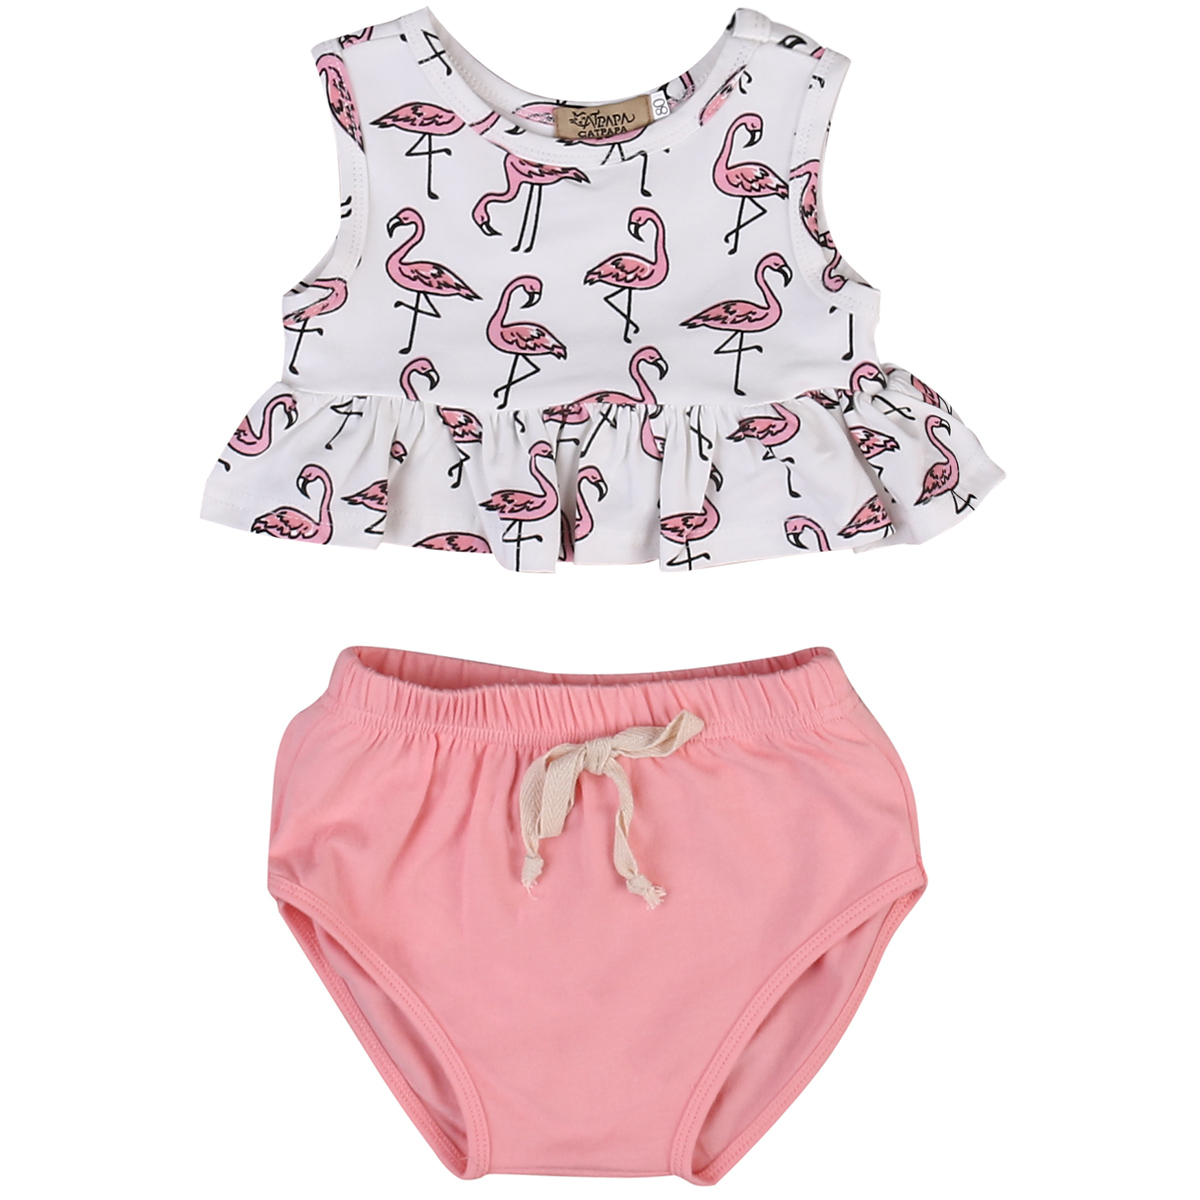 Newborn Infant Baby Girls Clothes Sleeveless Tops Vest Briefs Bottom Outfits Set baby girl clothes newborn baby girl clothes